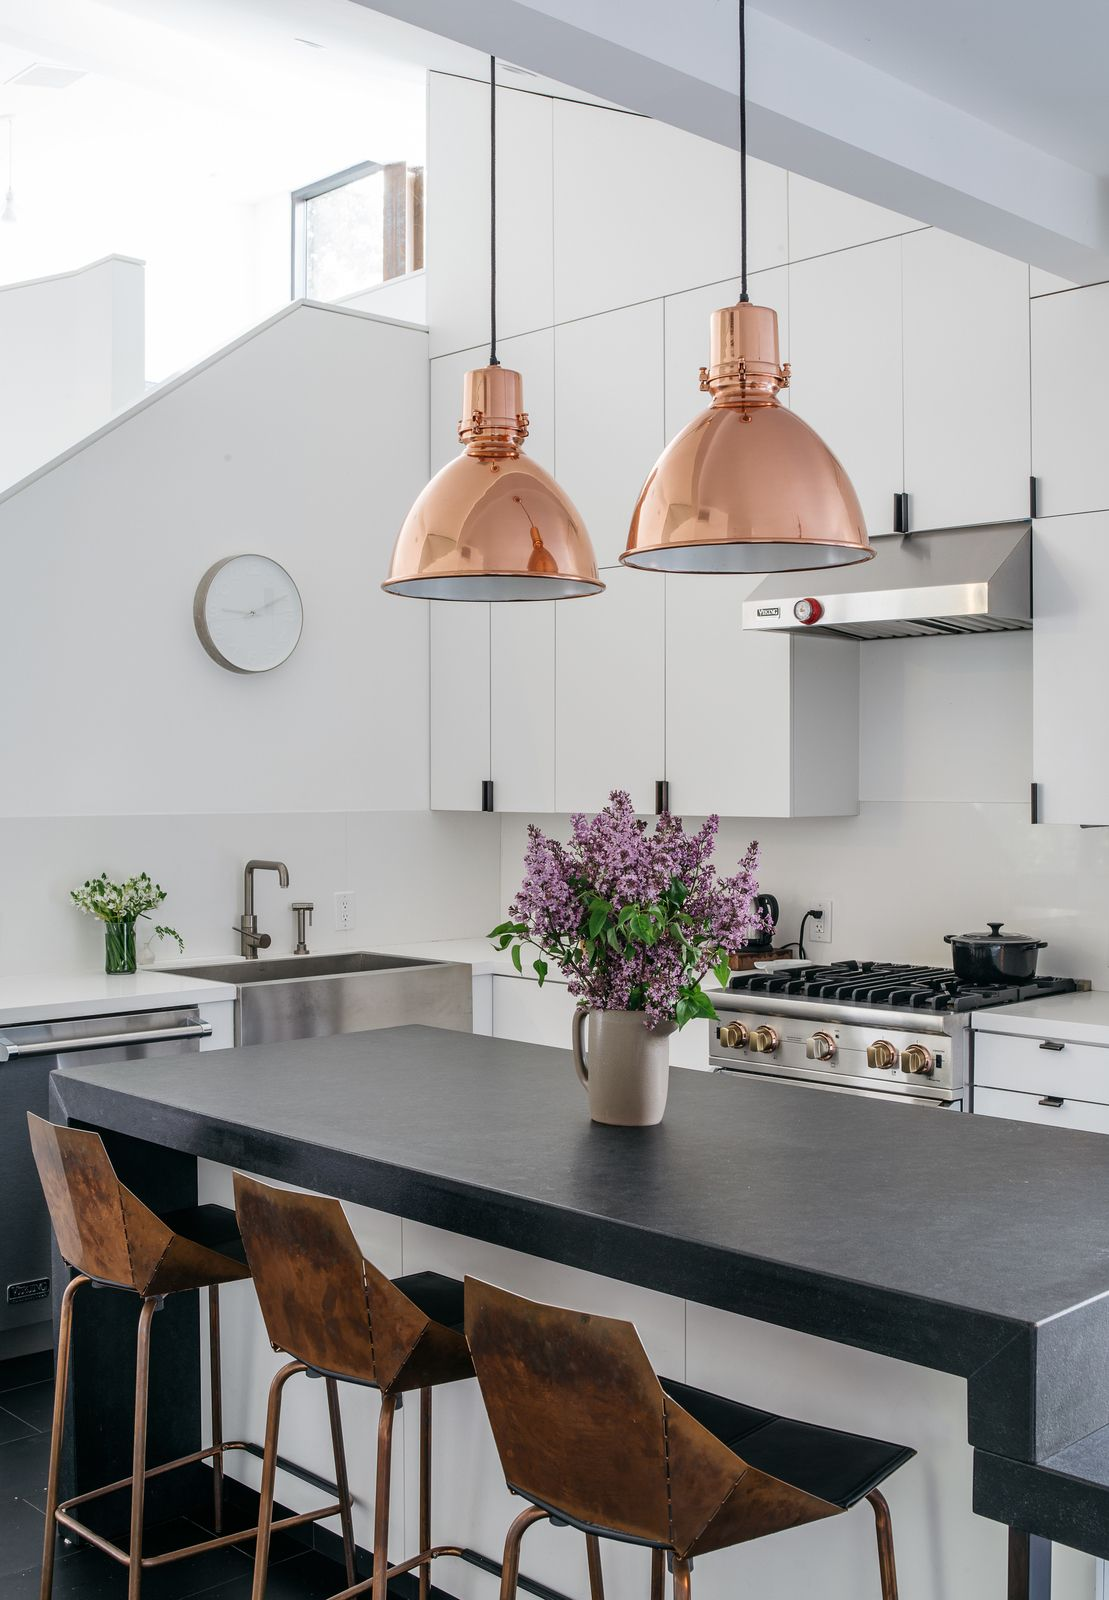 Copper Pendant Lights Kitchen This Los Angeles Home Is Driven By Automotive Design Copper